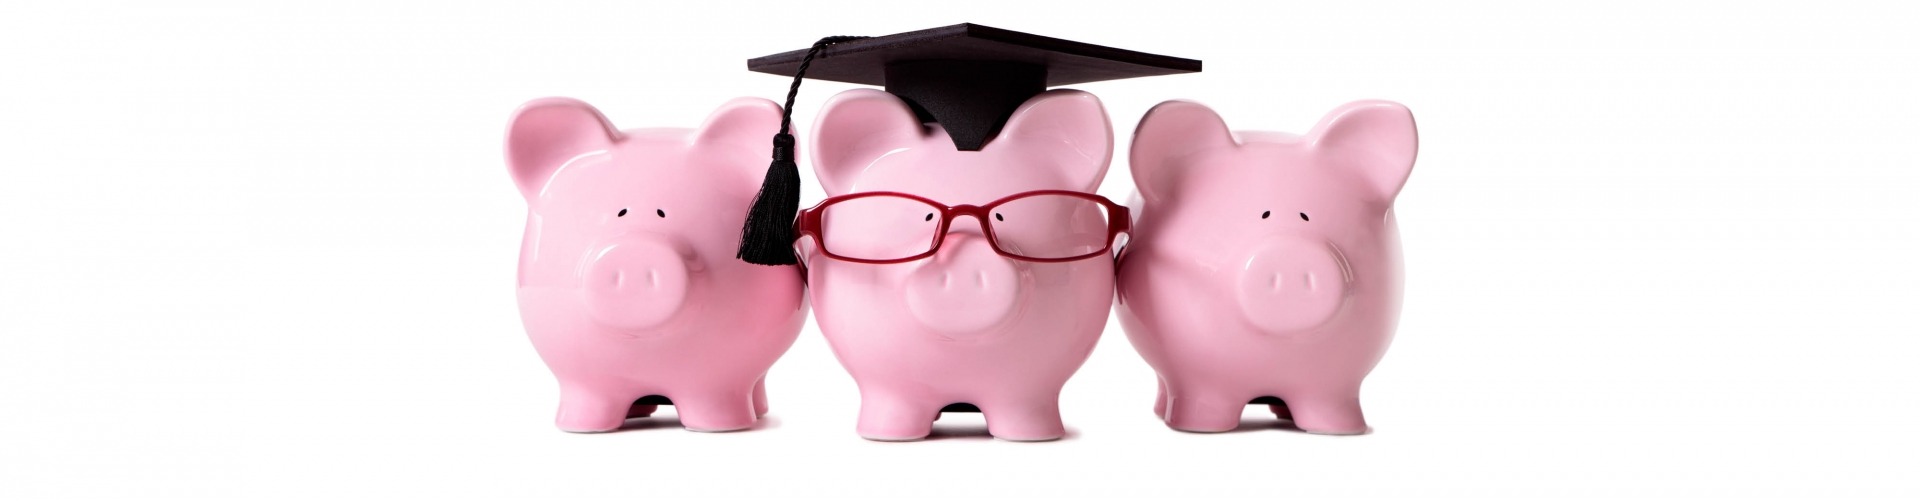 Three piggy banks, middle one has glasses and a graduation cap